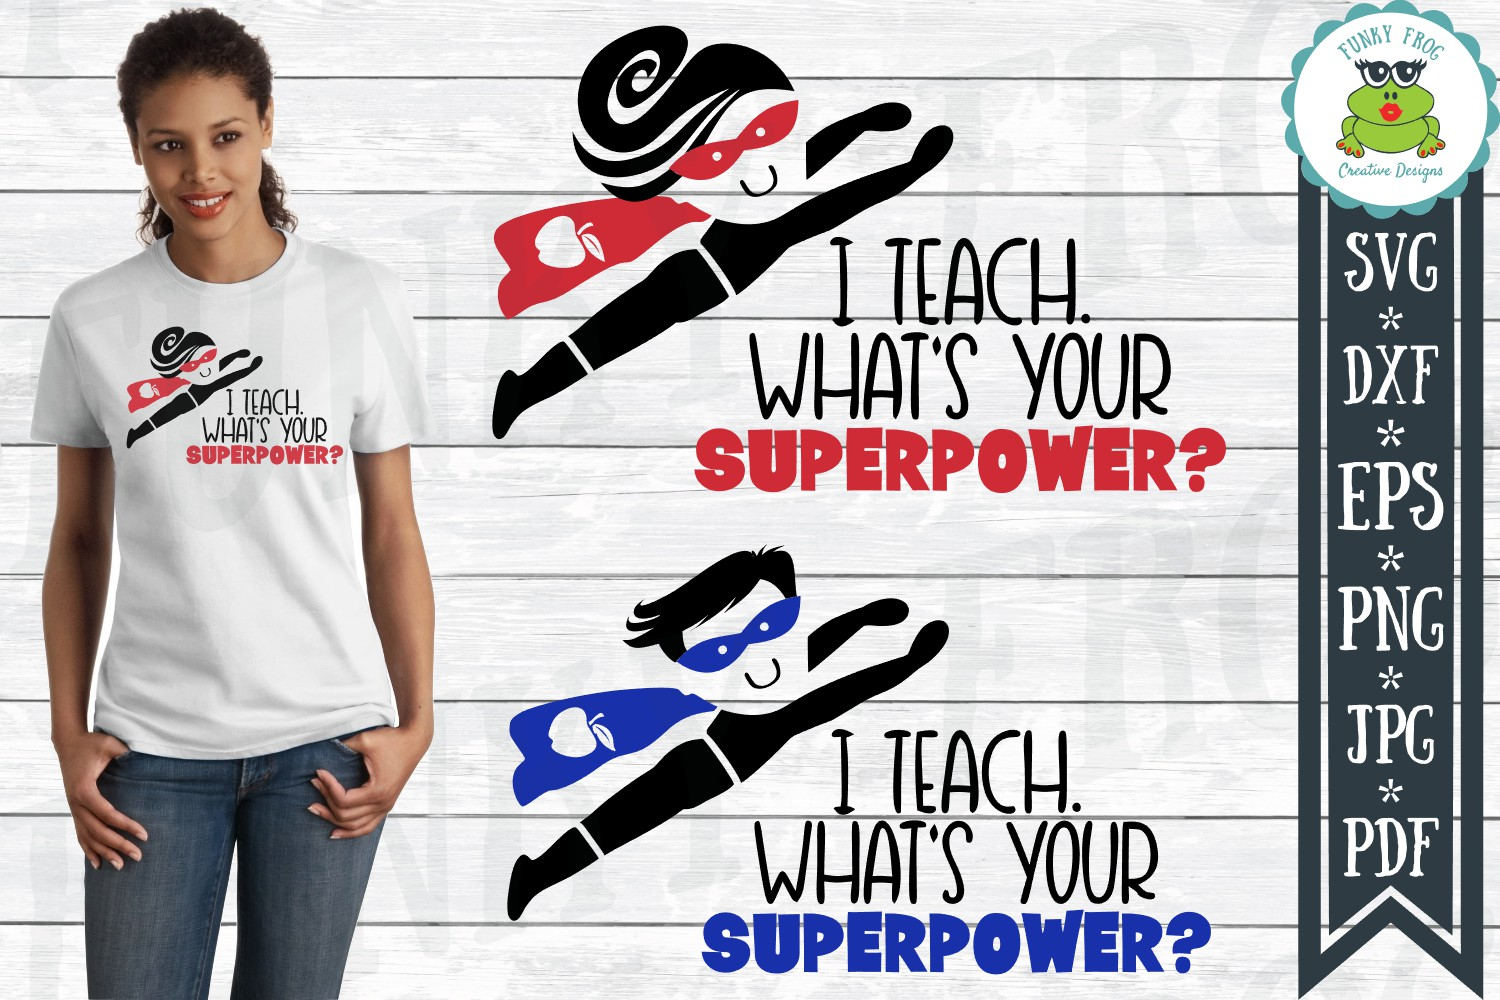 I Teach What's Your Superpower - Teacher SVG Cut File example image 1